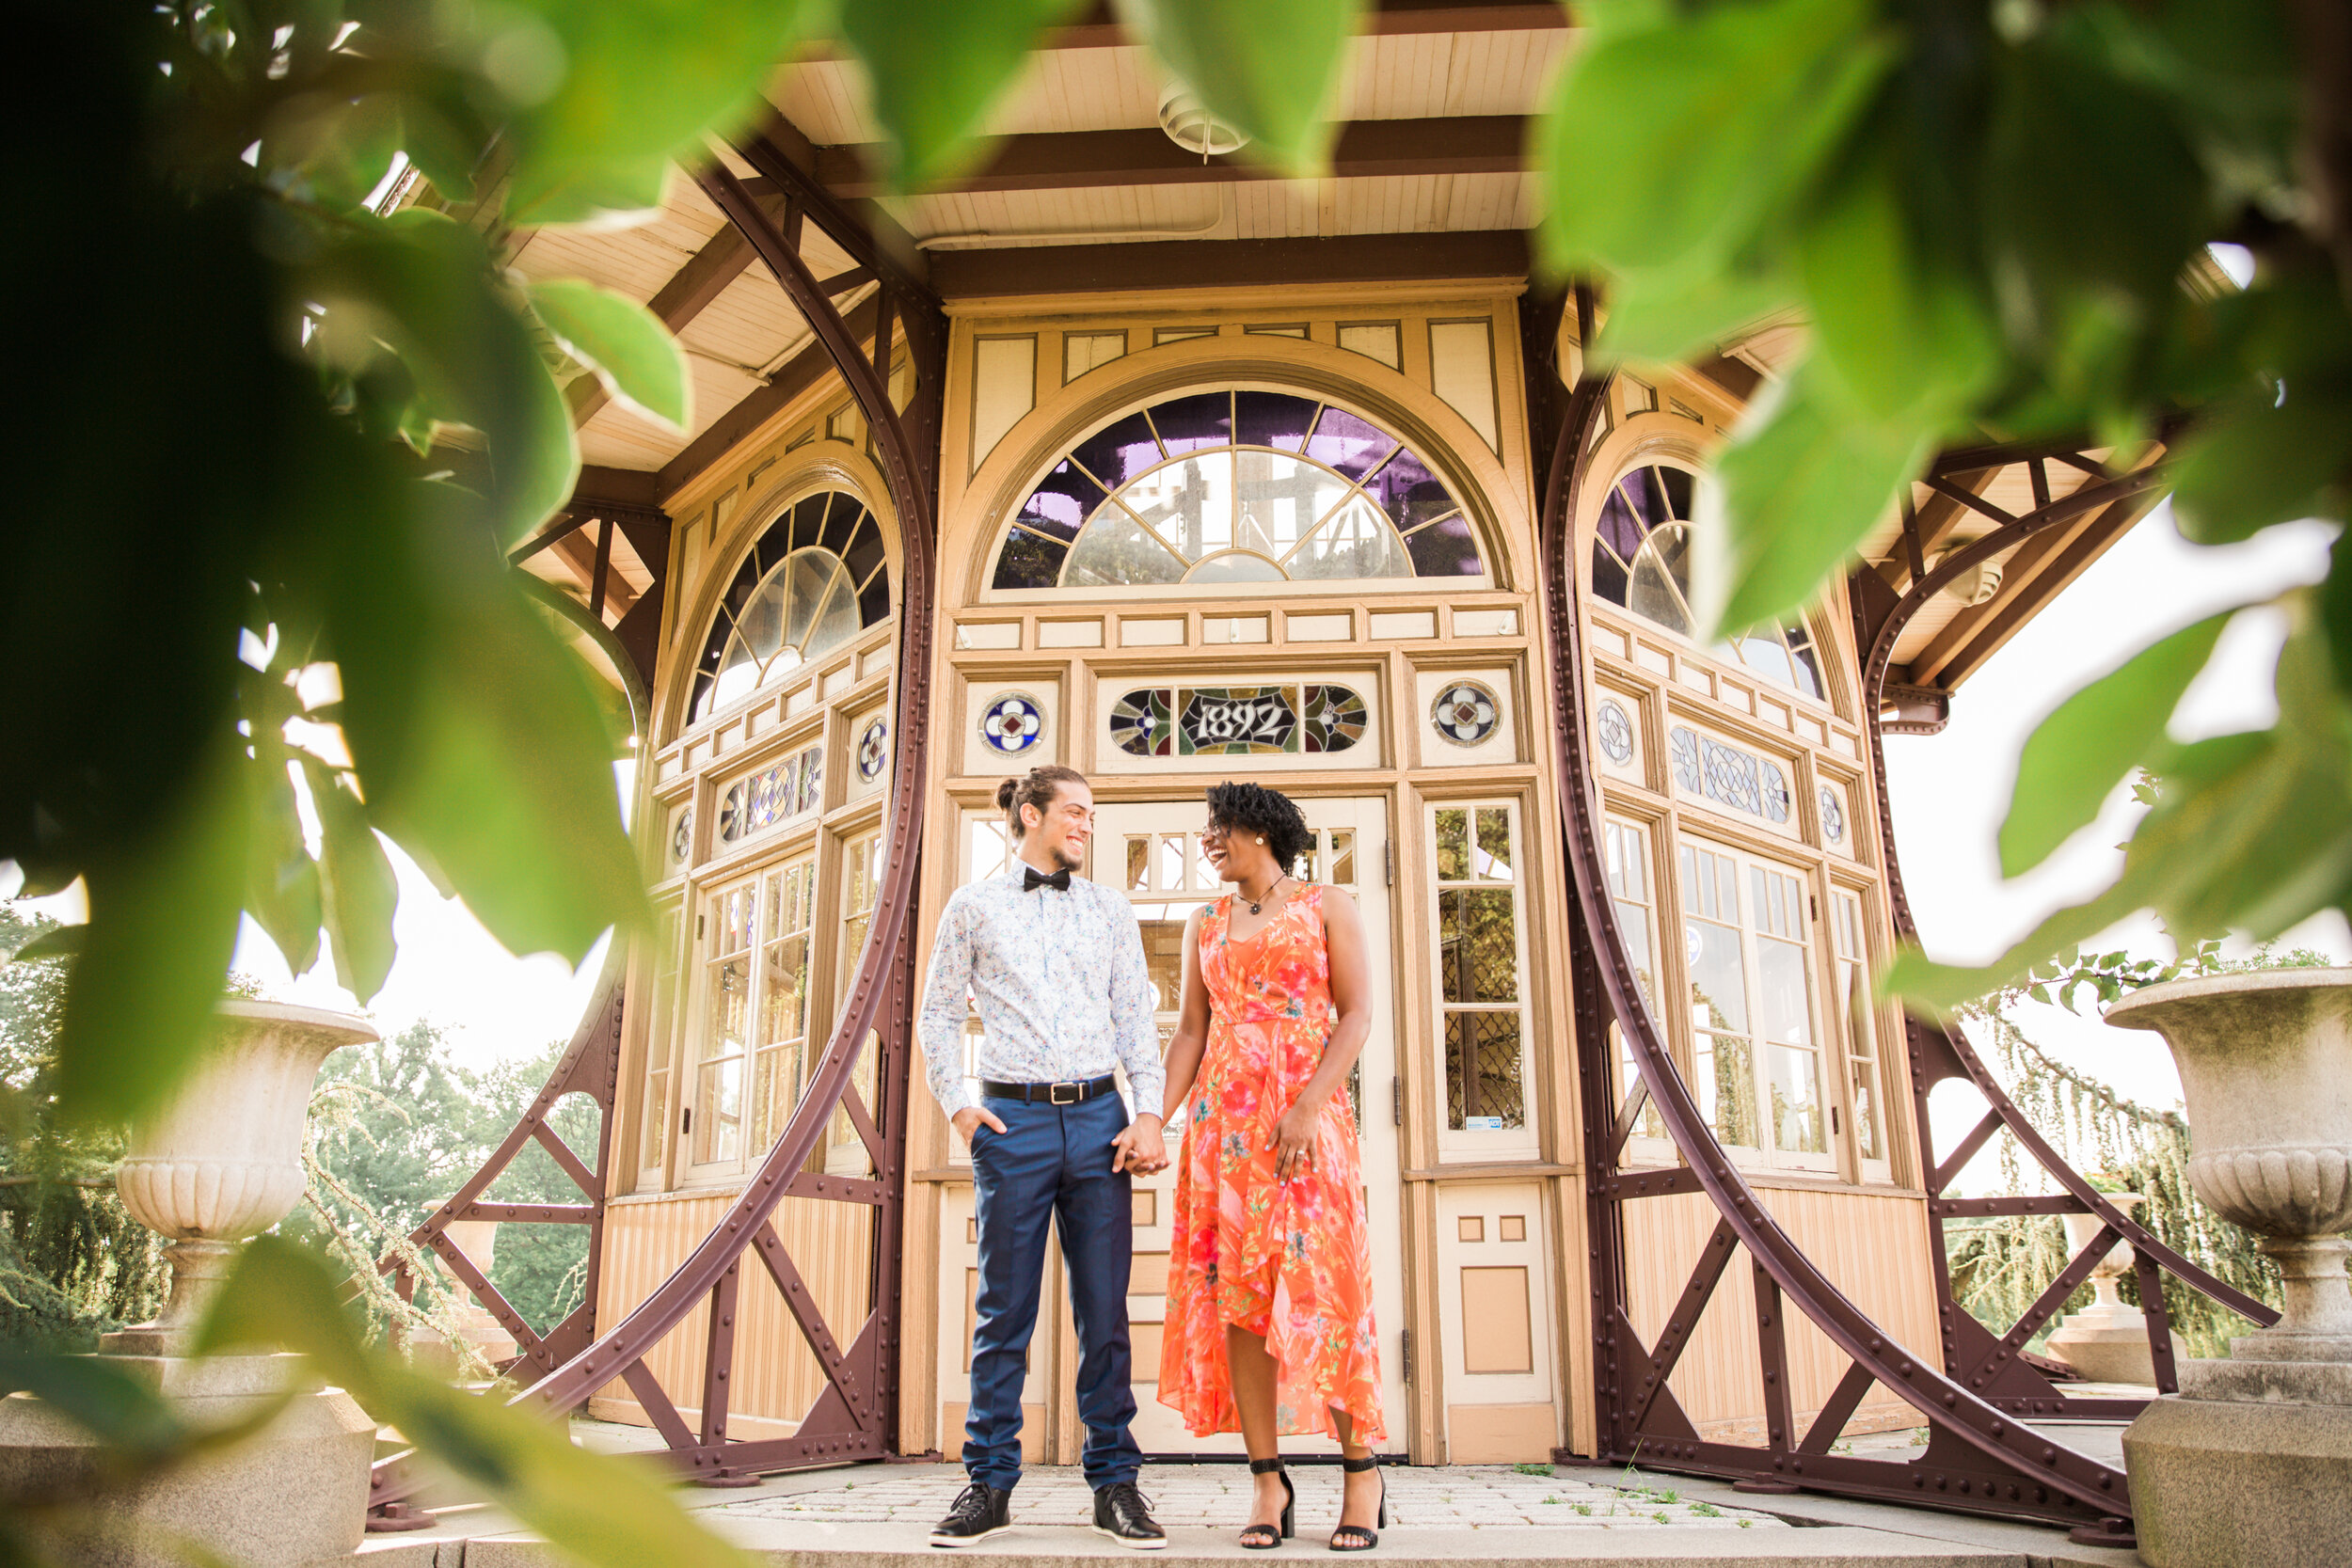 Maryland Natural Light Photographer Golden Hour Engagement Session in Baltimore Maryland Patterson Park Pagoda DC Wedding Photographers Megapixels Media Photography and Videography Mixed Couple Multiracial Bride and Groom-6.jpg